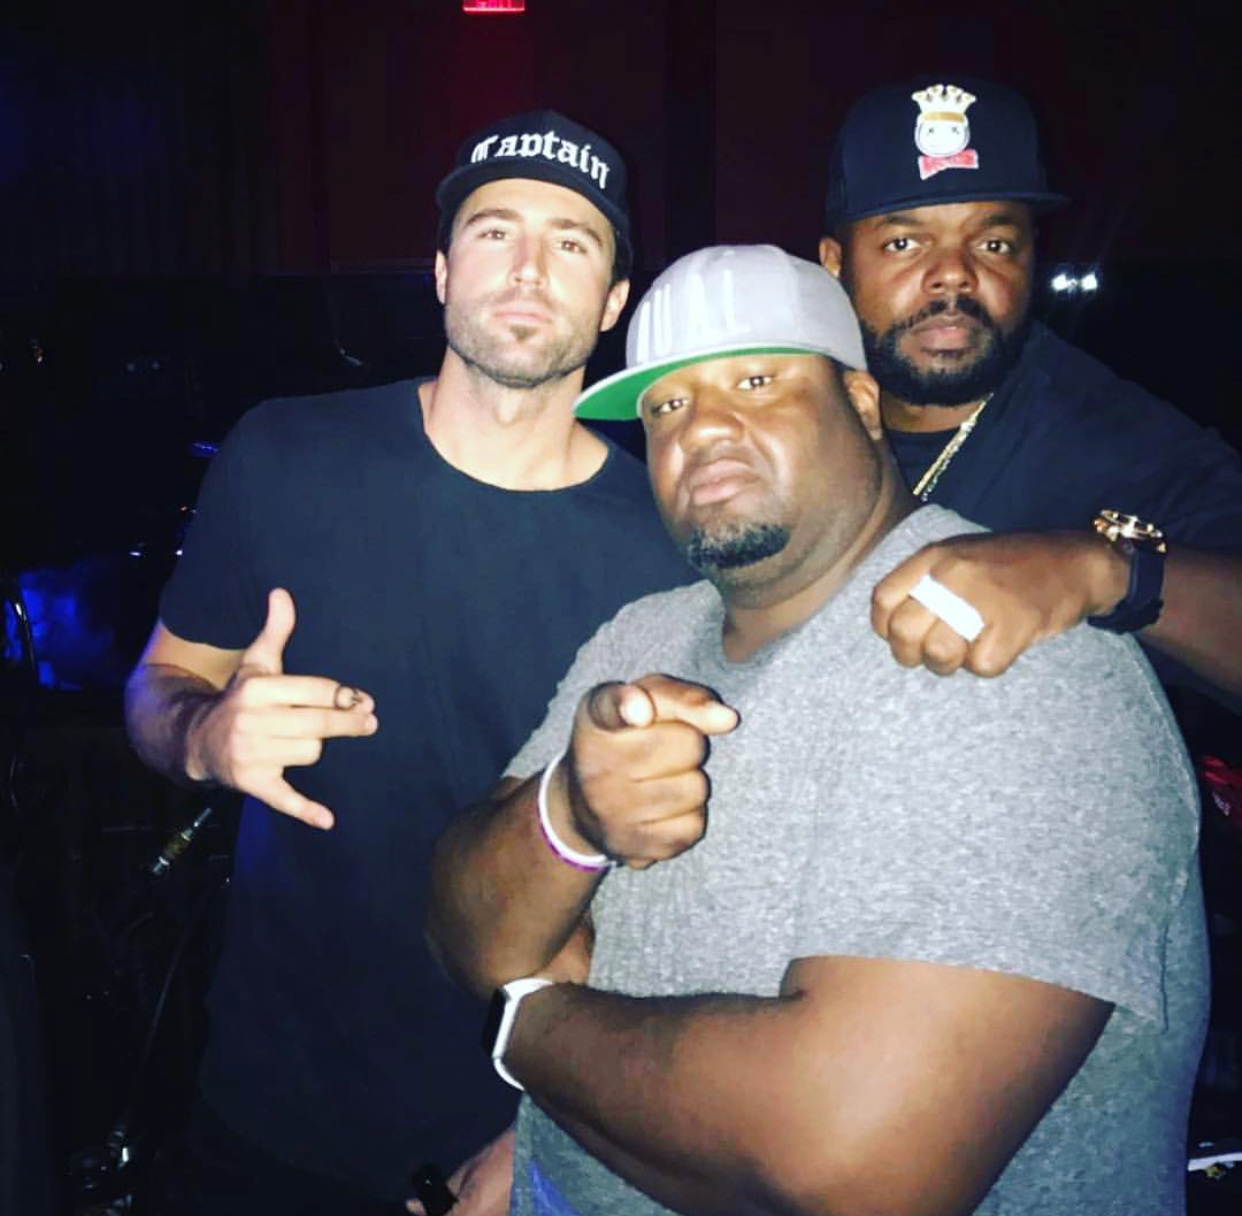 @djsyeyoung x Brody Jenner